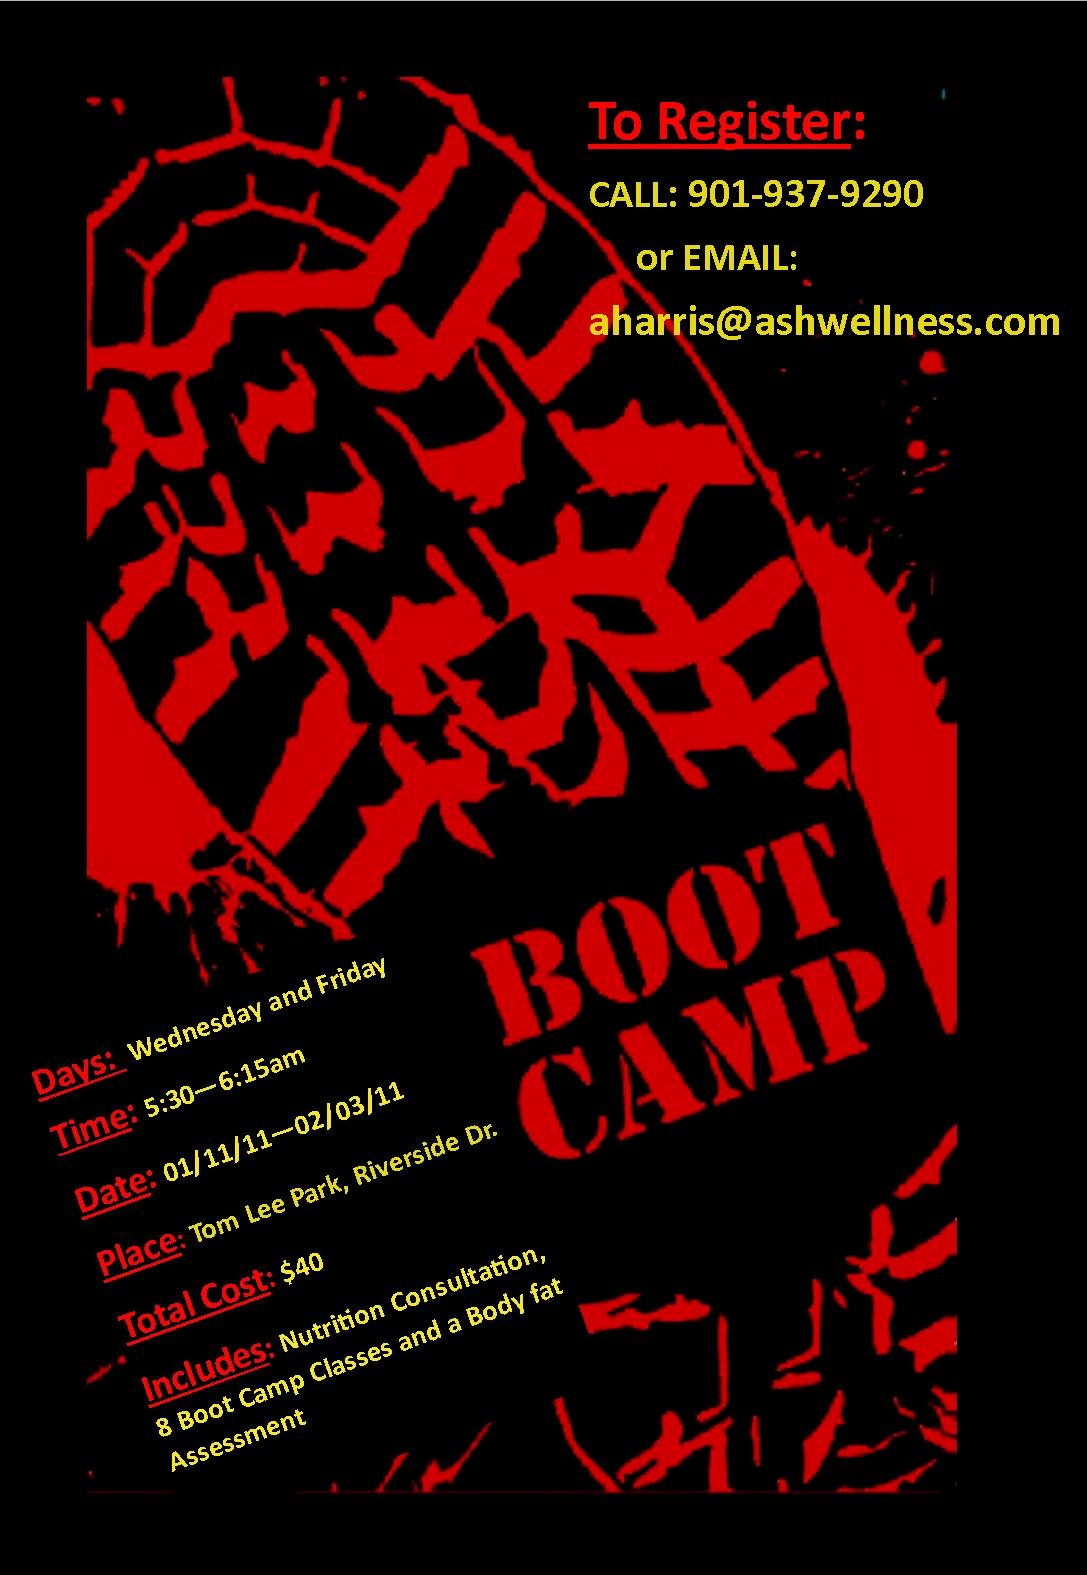 Boot Camp Flyer Template Lovely E E with ash